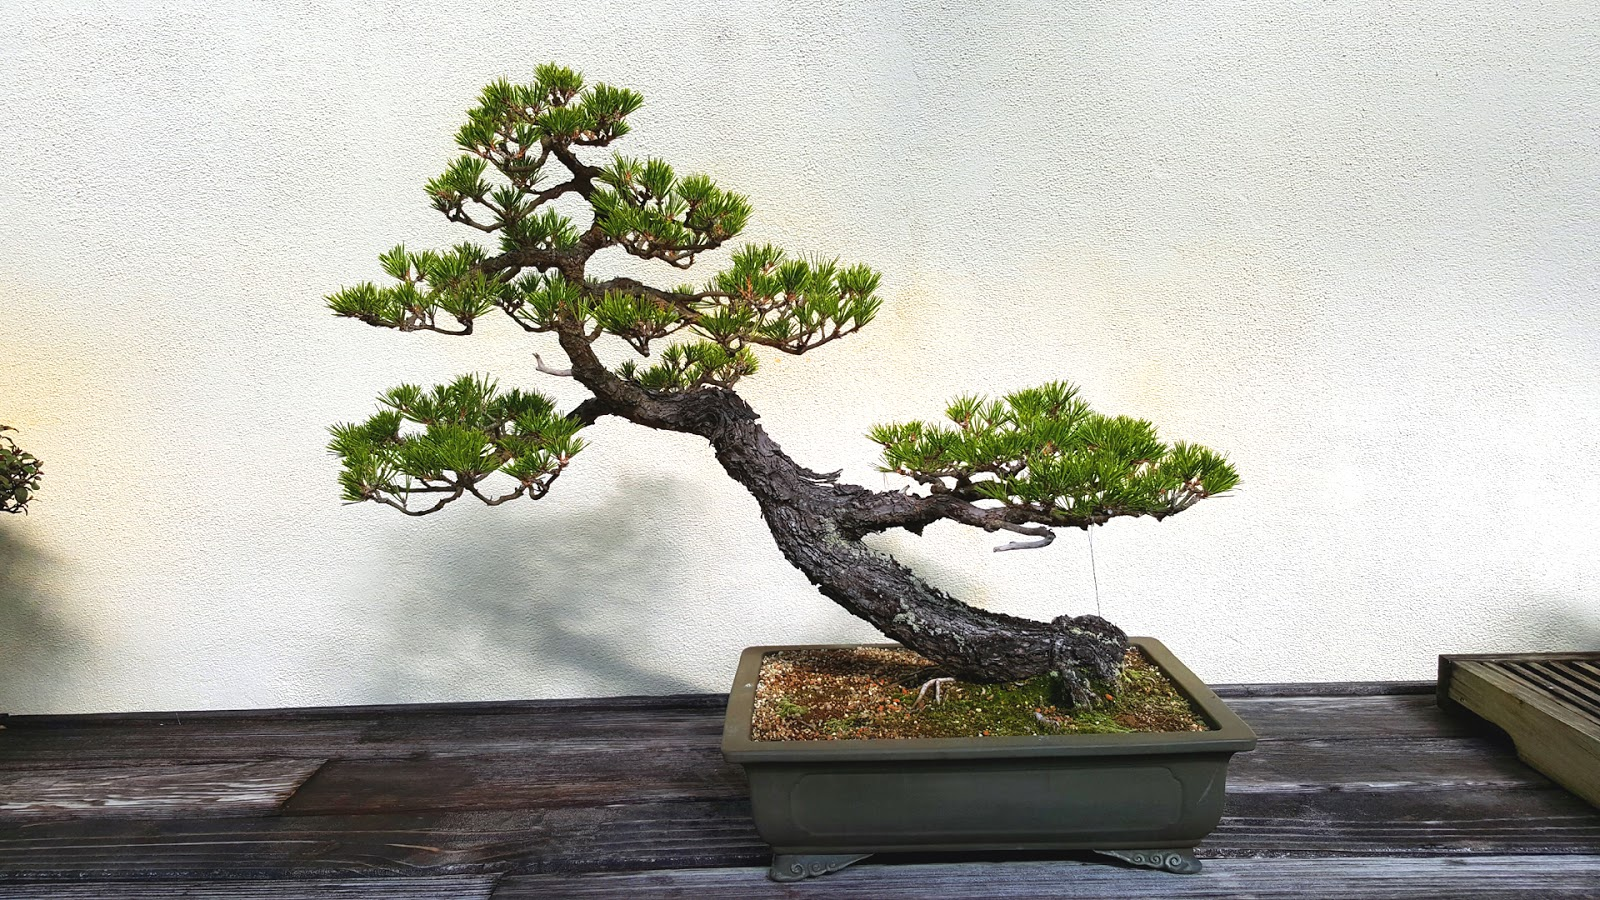 Bonsai Misadventures Bonsai Design Or What I Learned From